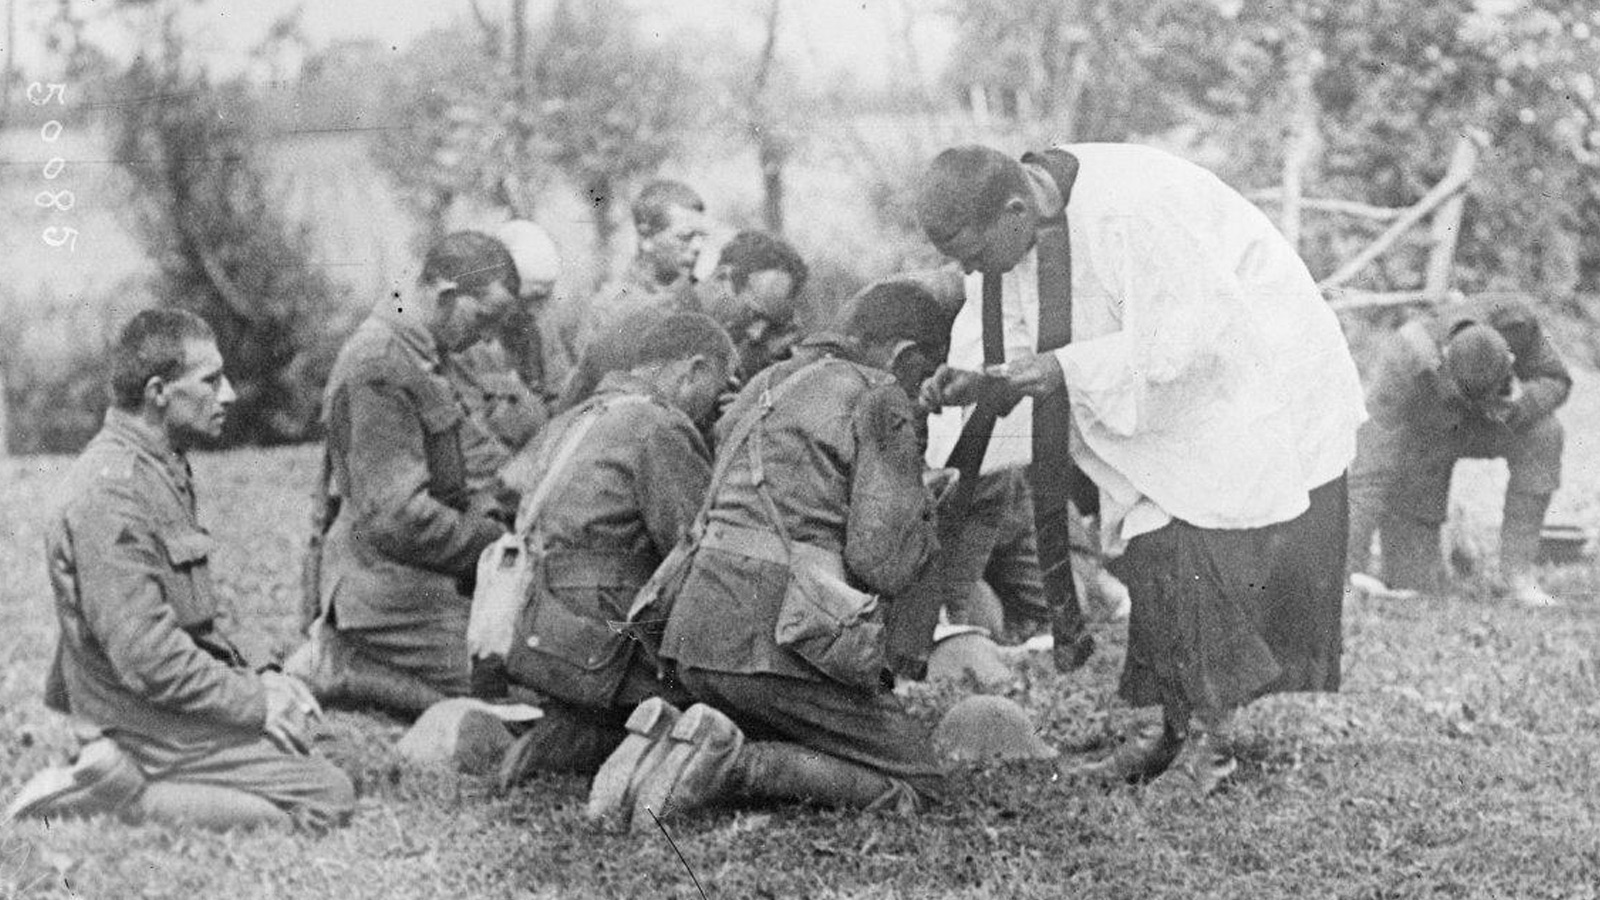 Faith article. Black and white photograph showing 5 soldiers praying with a priest in an open field.